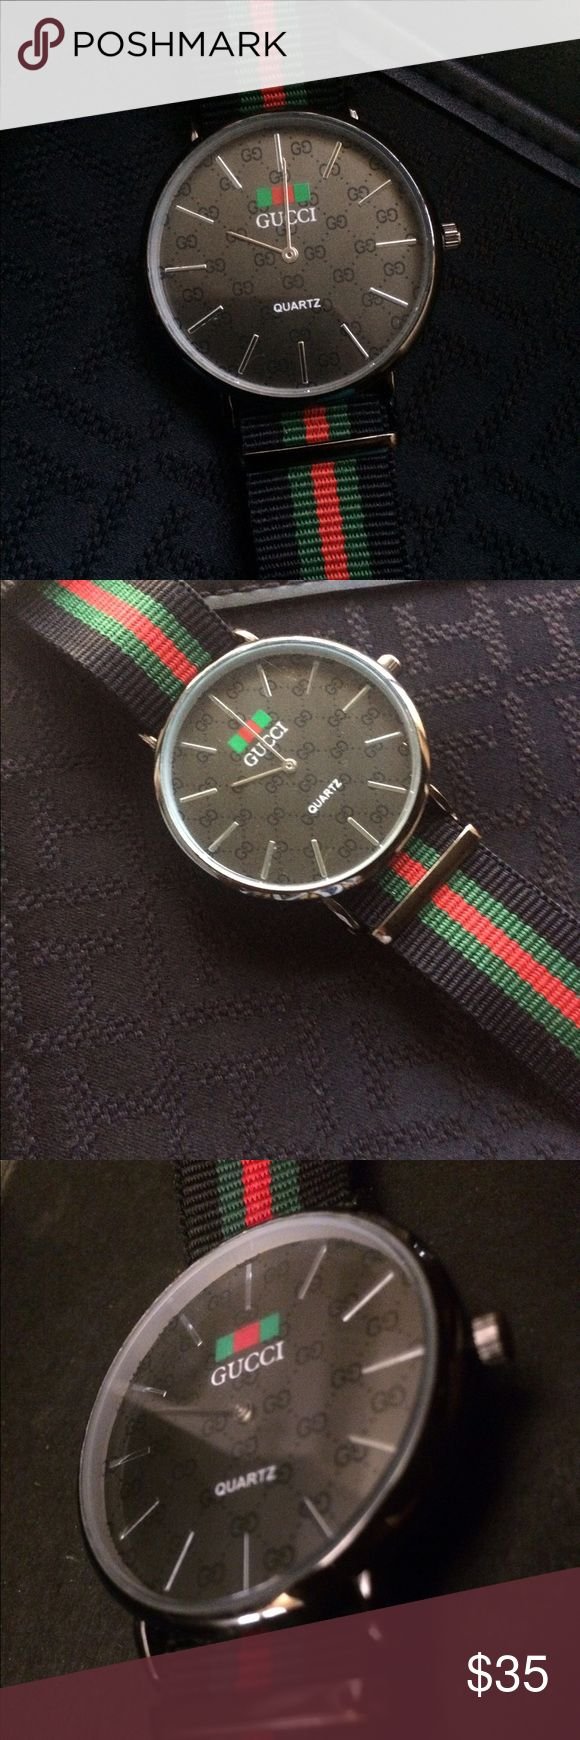 Gucci watches Gucci watches for Womem /Men Gucci Accessories Watches